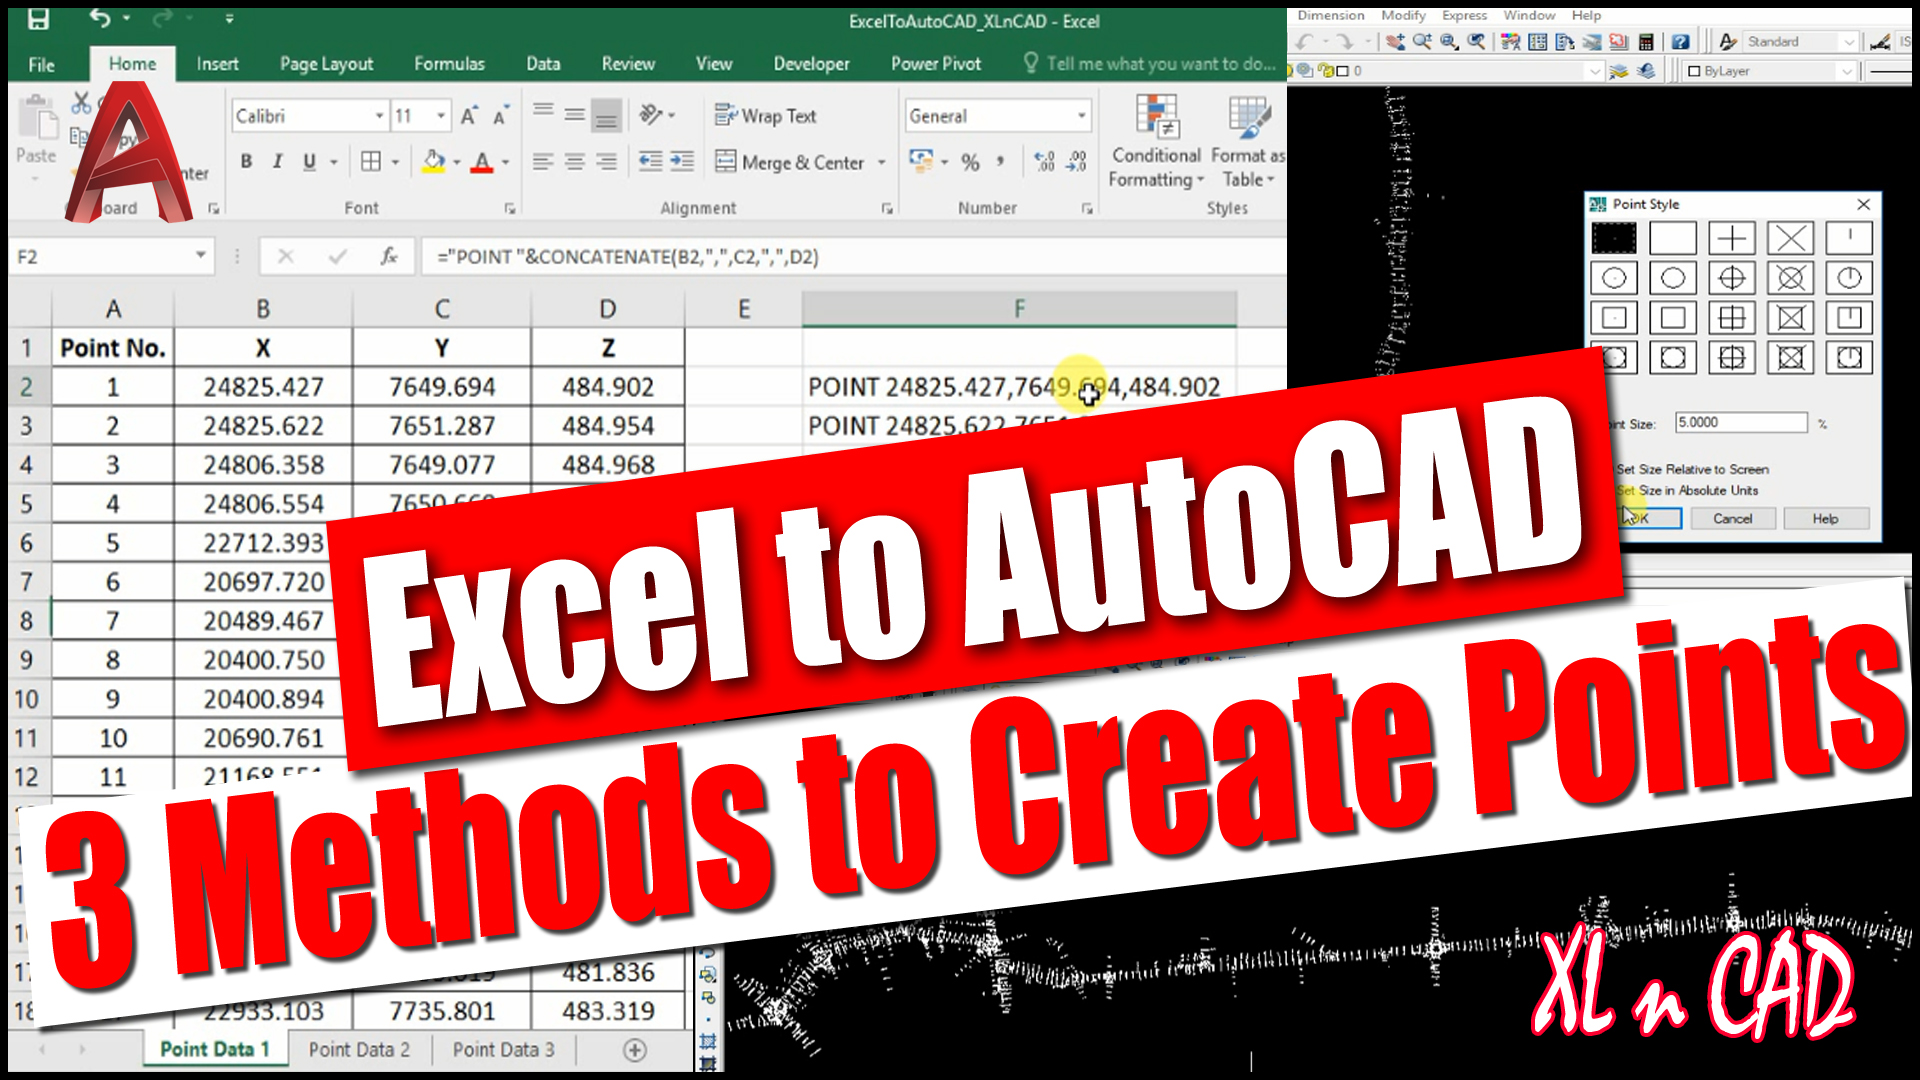 Import X, Y, Z Coordinates from Excel to AutoCAD